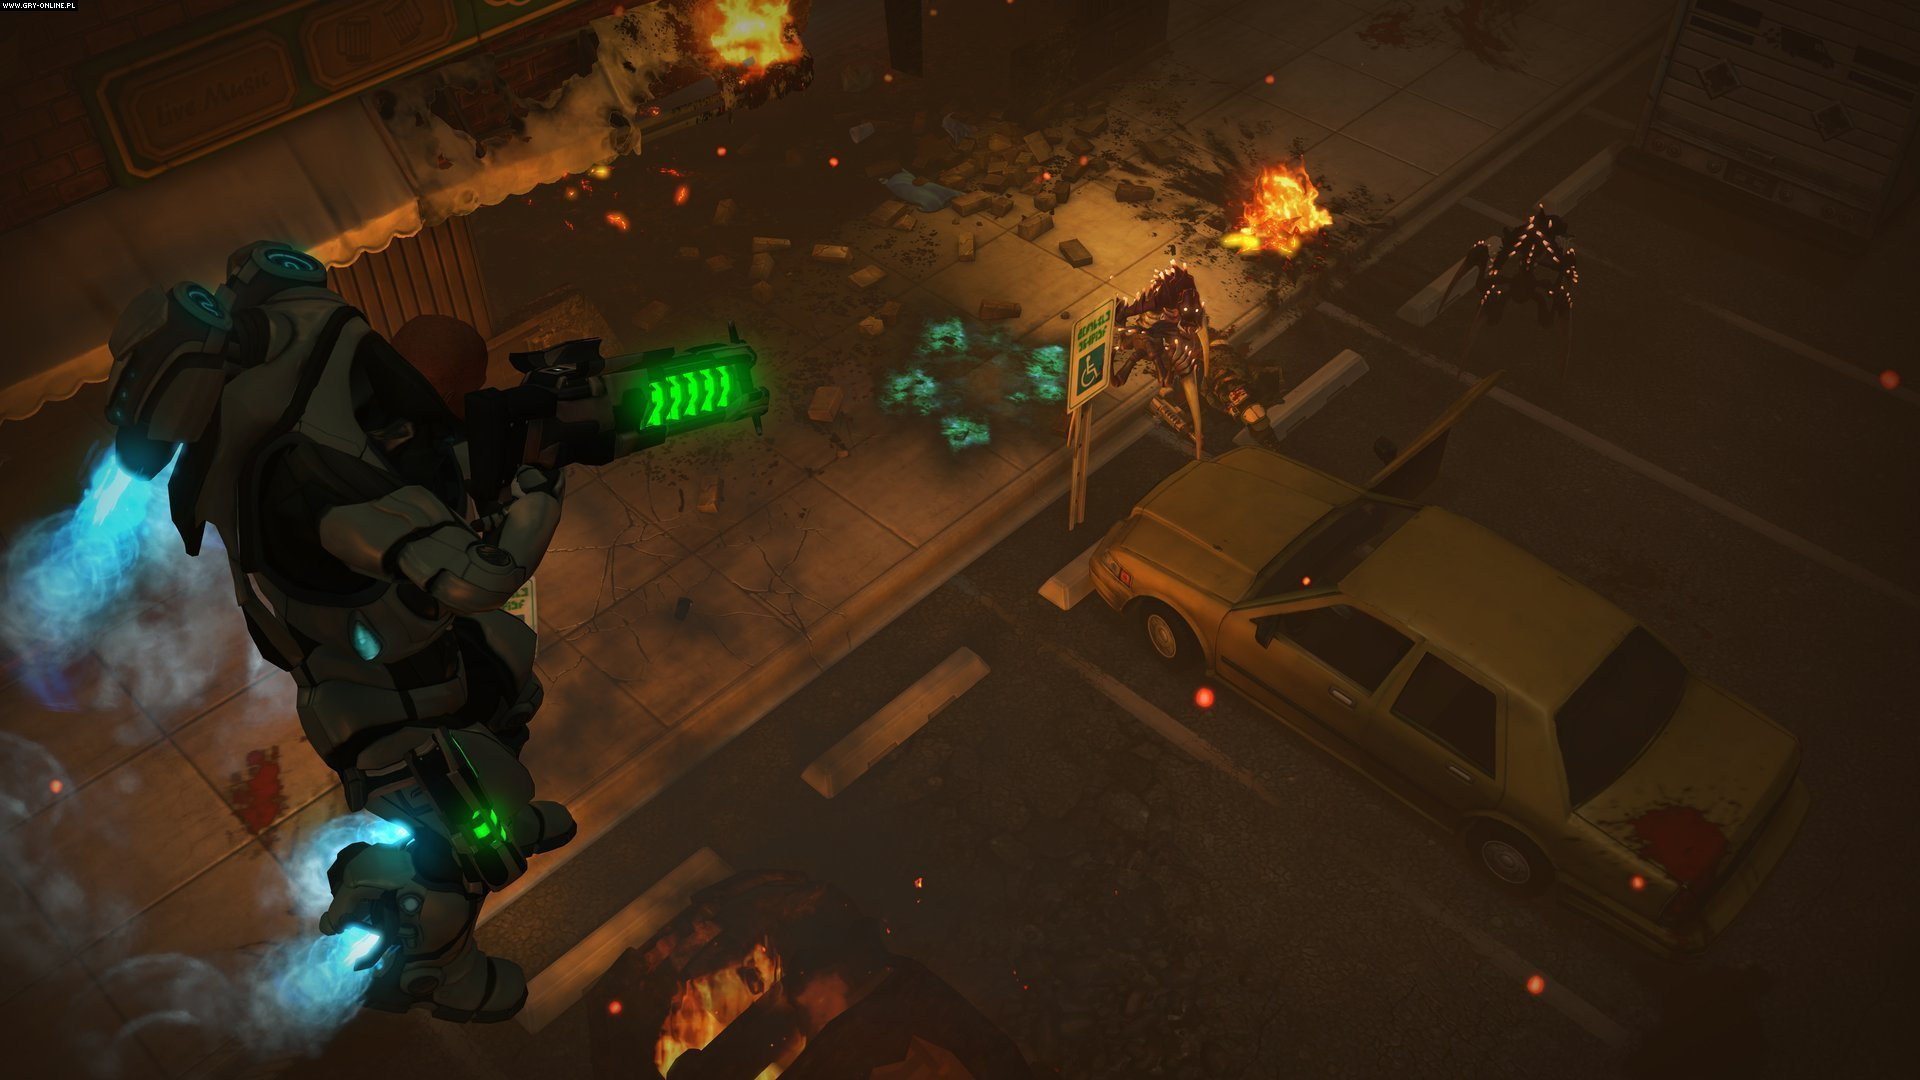 XCOM: Enemy Unknown PC, X360, PS3 Gry Screen 136/179, Firaxis Games, 2K Games